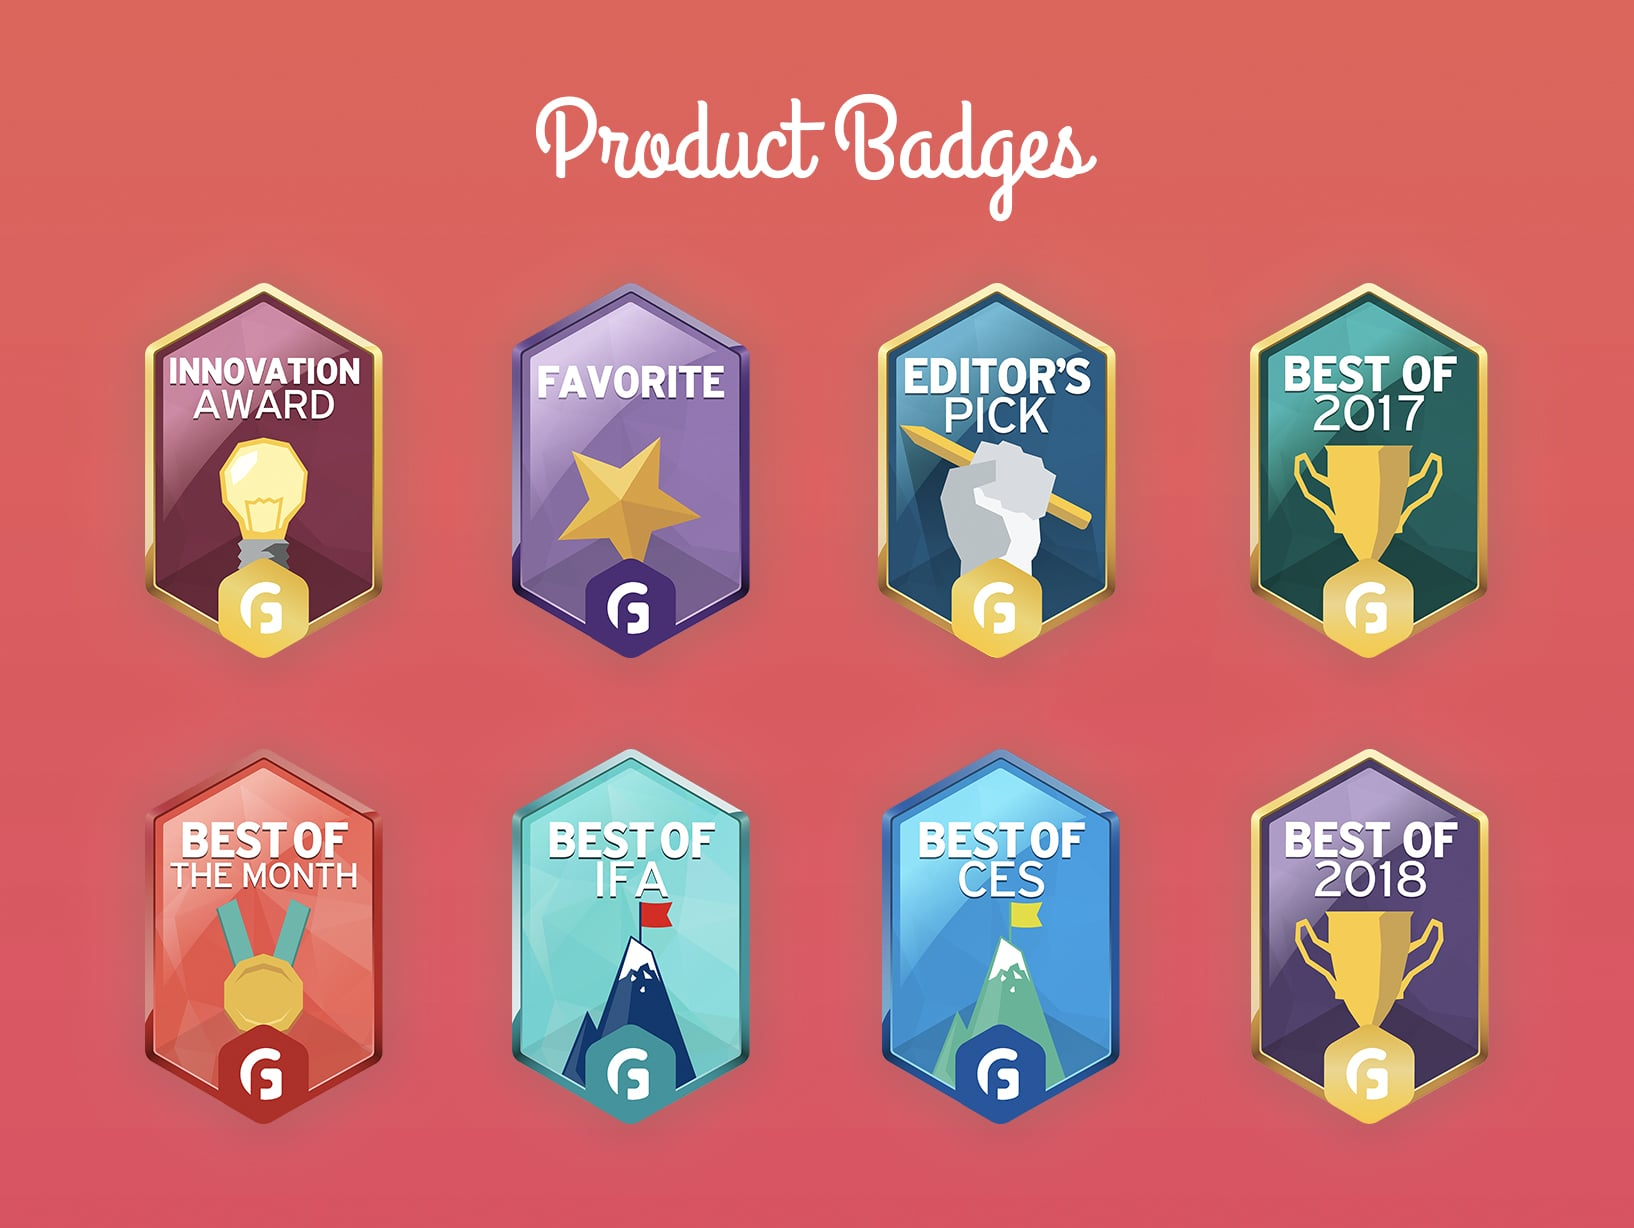 Gadget Flow Announces Badges for Best Products